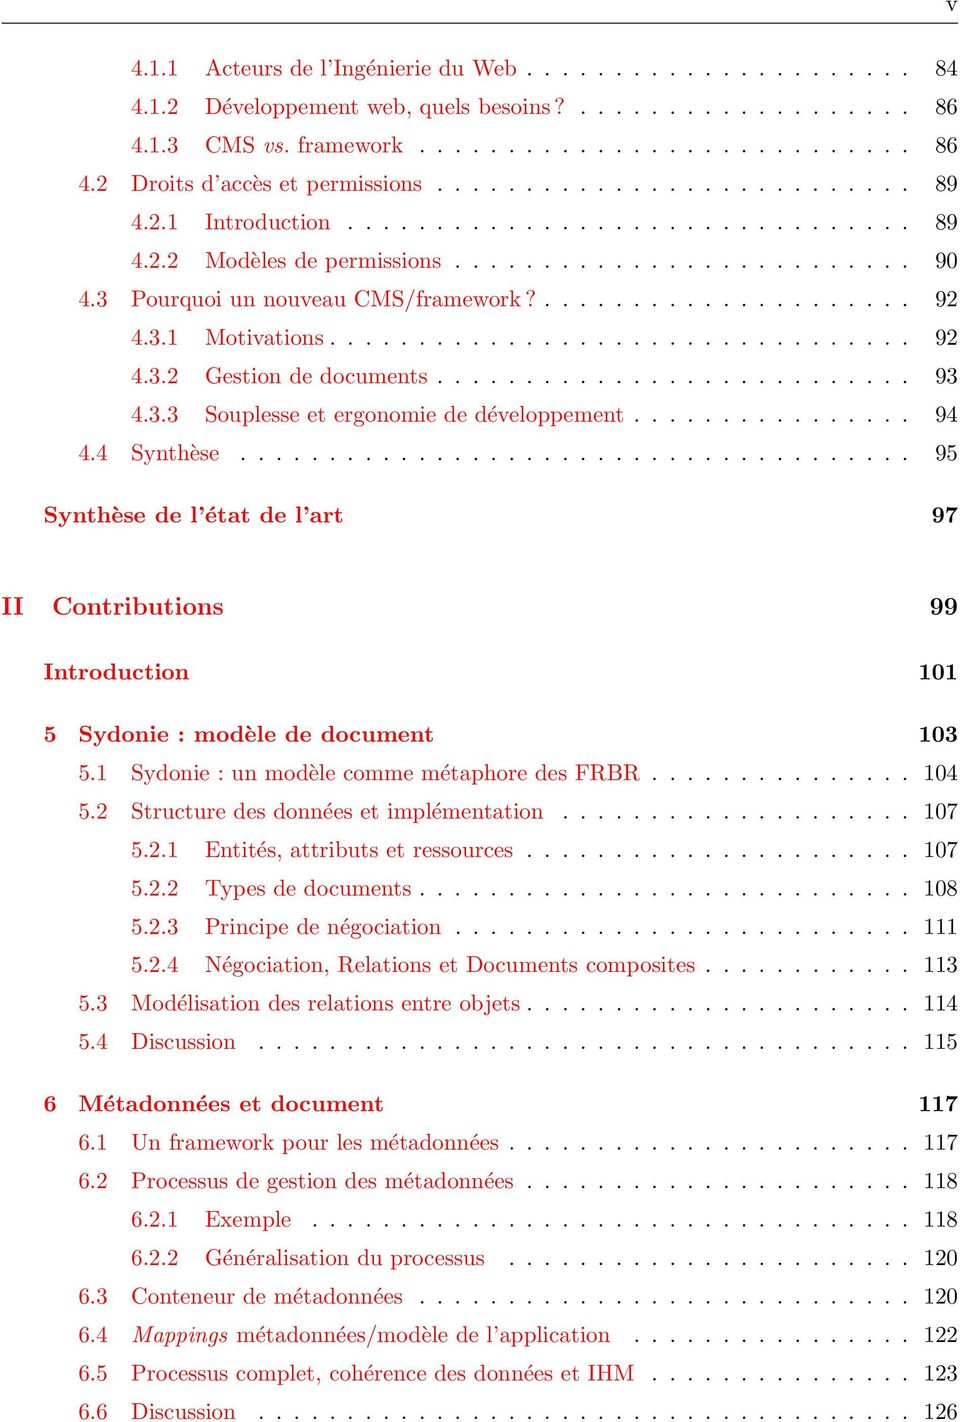 3.1 Motivations................................. 92 4.3.2 Gestion de documents........................... 93 4.3.3 Souplesse et ergonomie de développement................ 94 4.4 Synthèse.